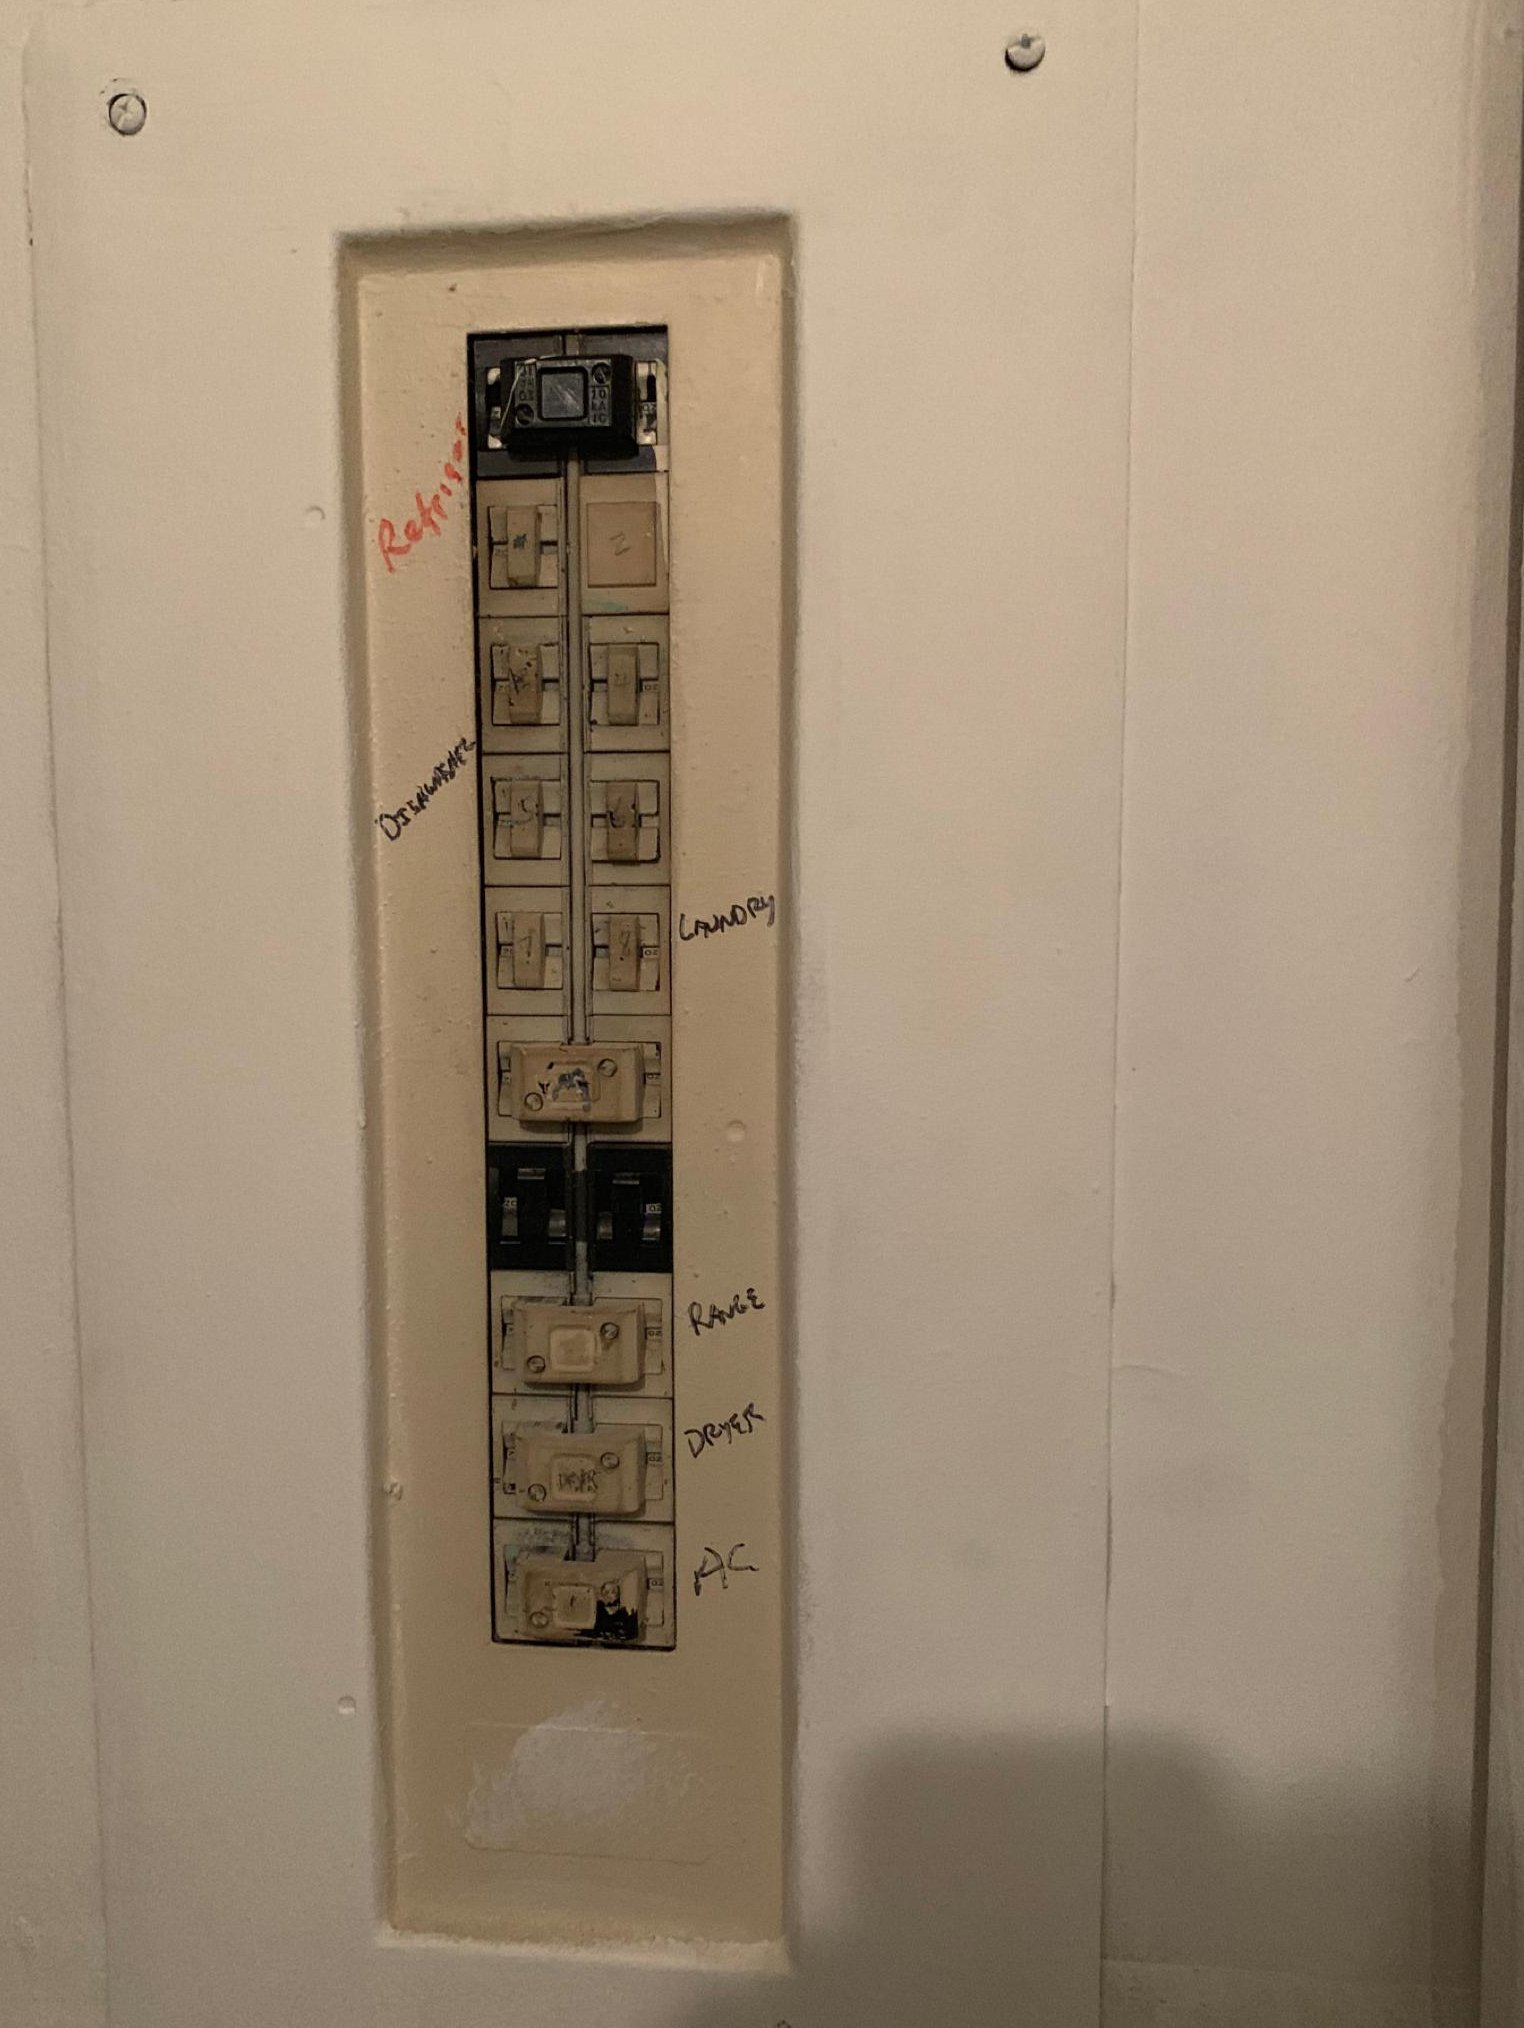 How To Design Electrical Circuits For Homes